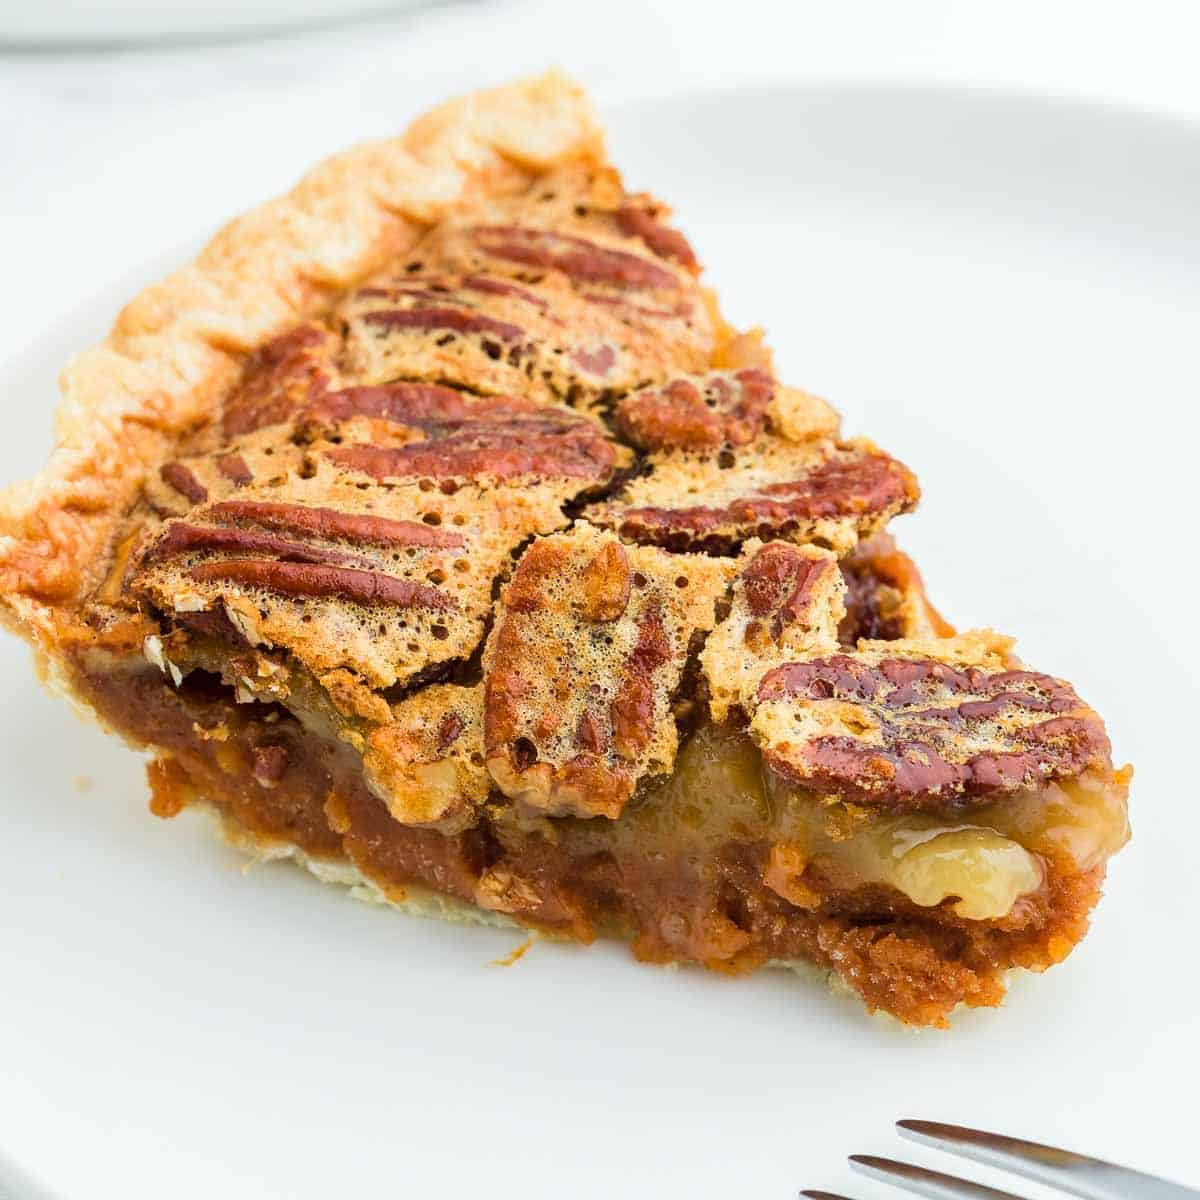 A closeup of a slice of freshly baked a Sweet Potato Pecan Pie